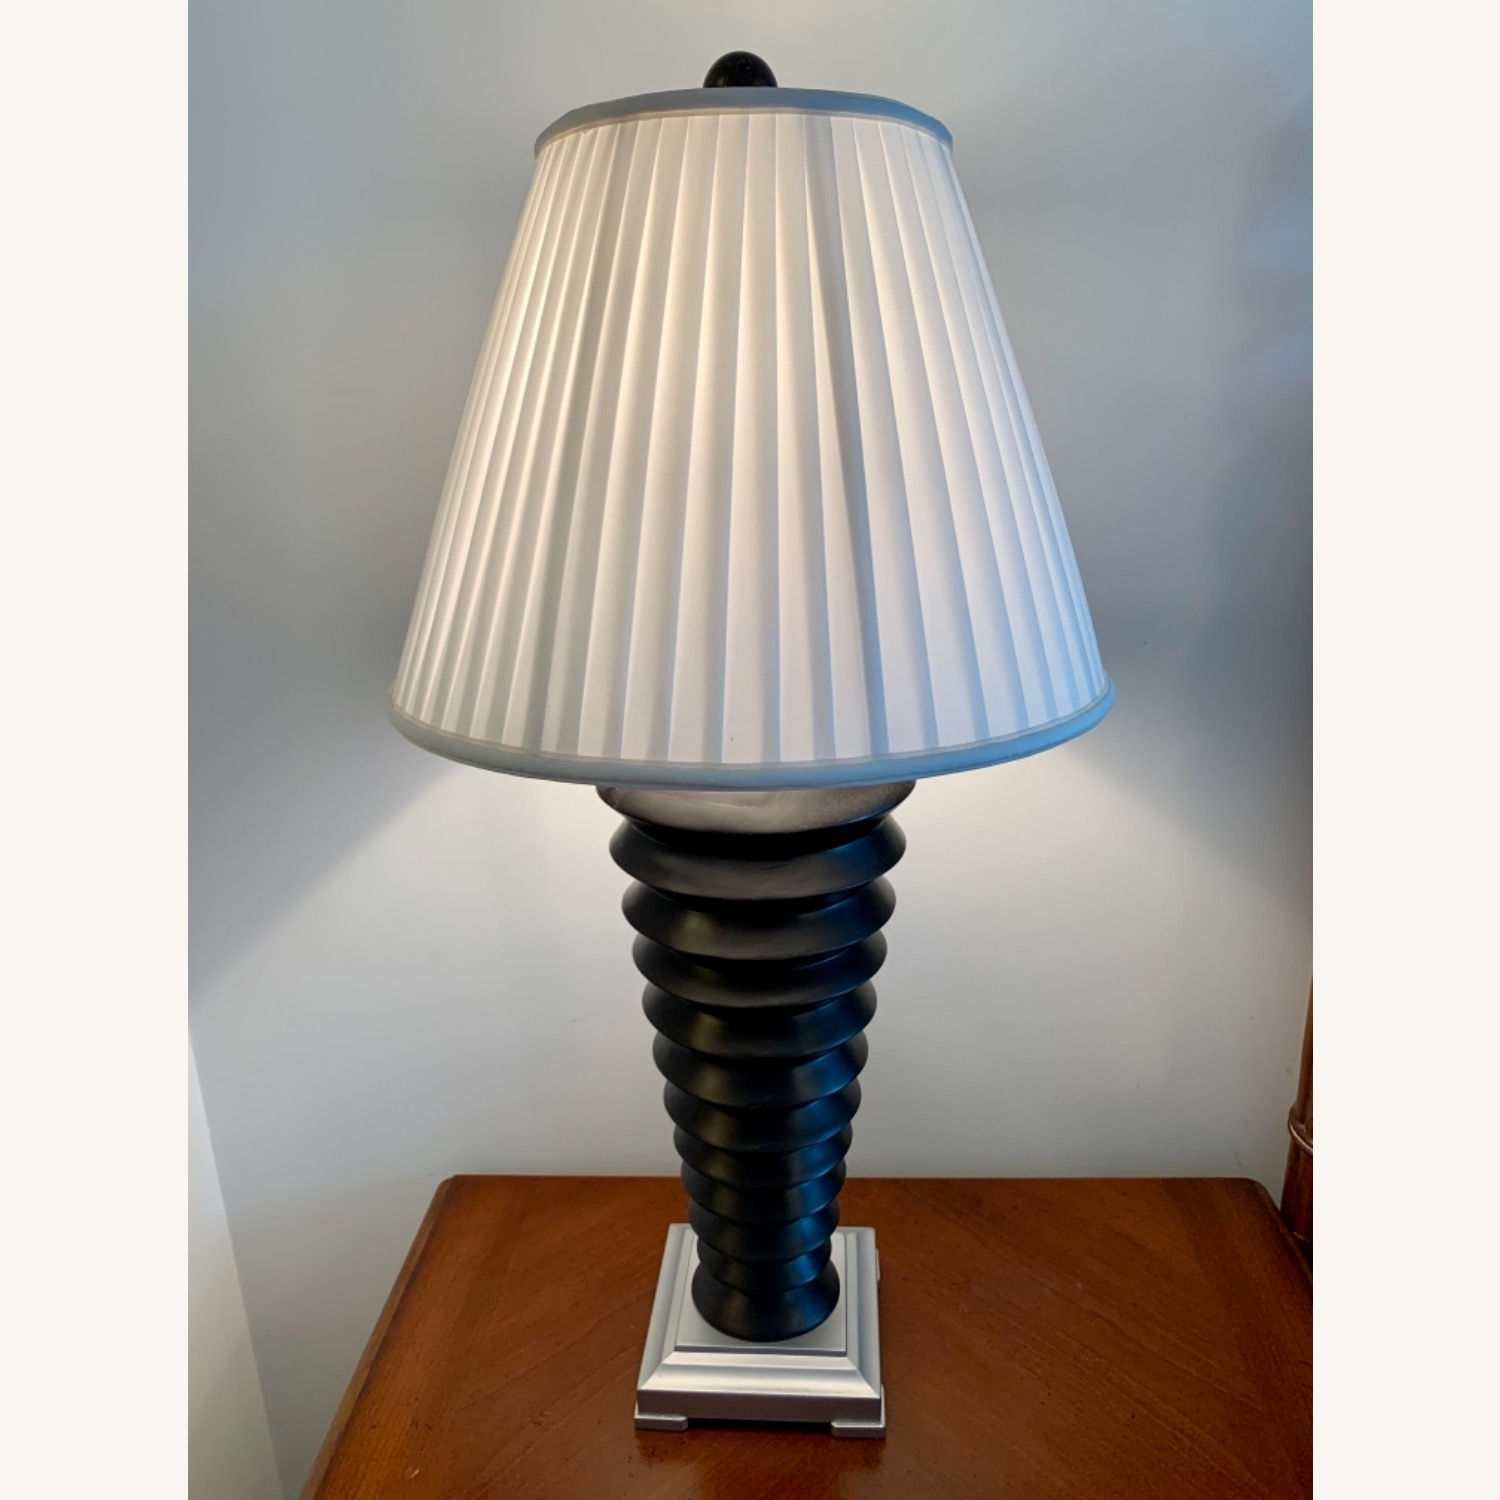 Black and White Nightstand Lamps - image-2